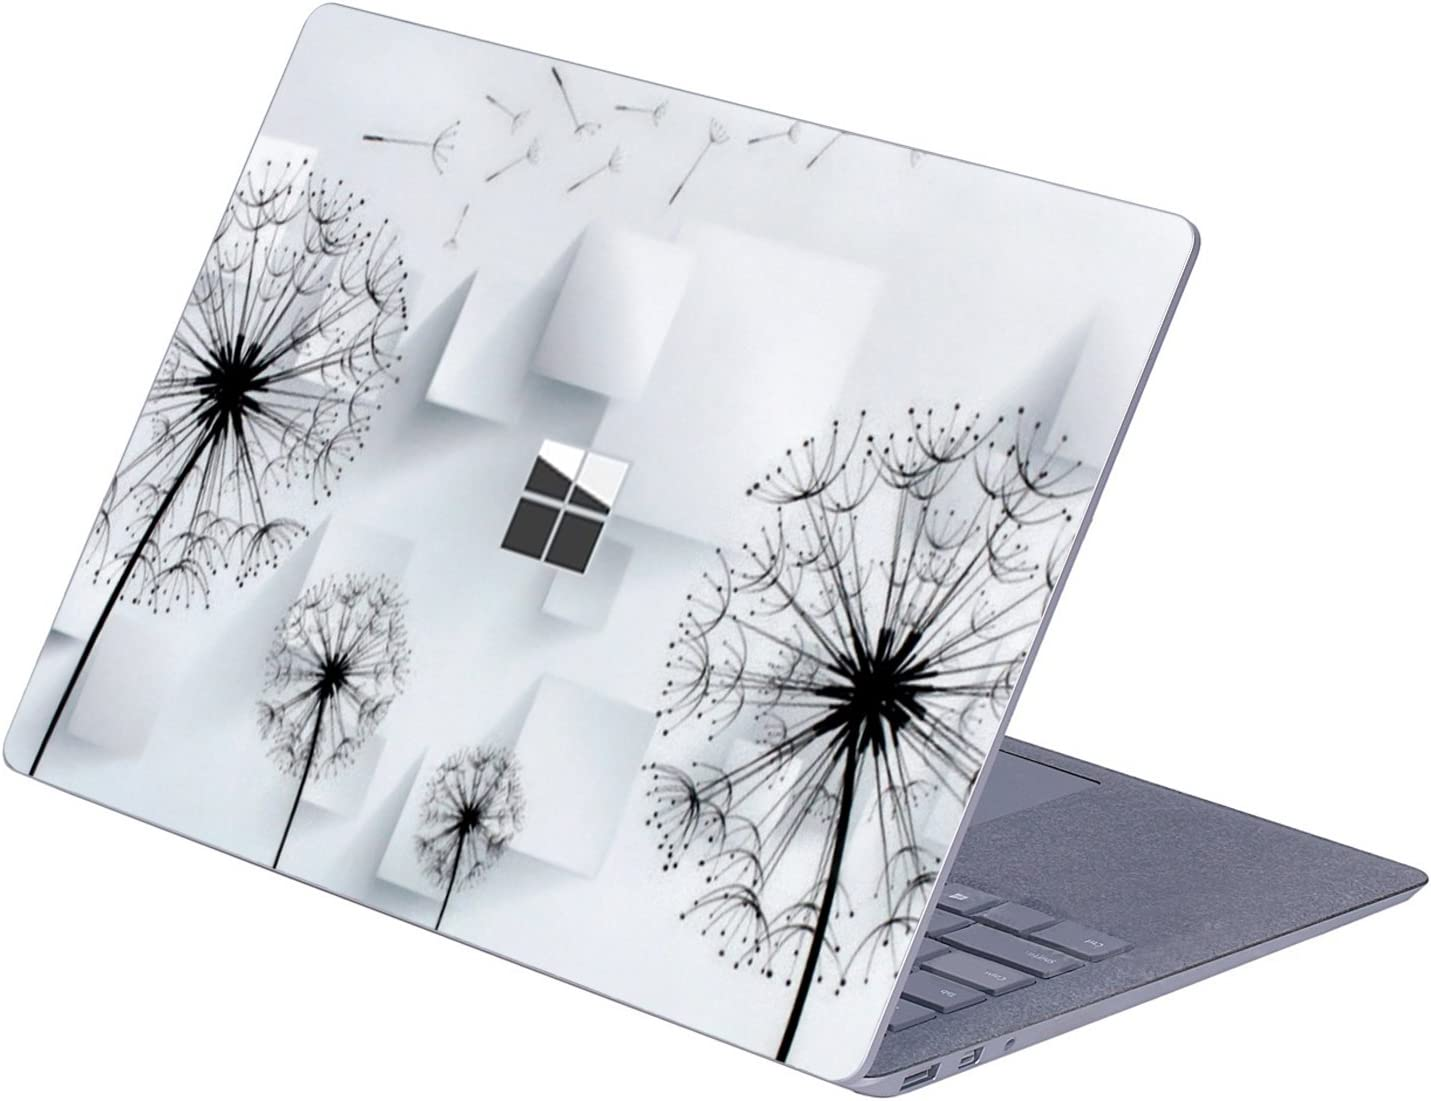 """MasiBloom Top Side Laptop Sticker Decal for 13"""" 13.5 inch Microsoft Surface Laptop 3 & 2 & 1 (2019/18/17 Released), Not Compatible with Surface Book (Dandelion)"""